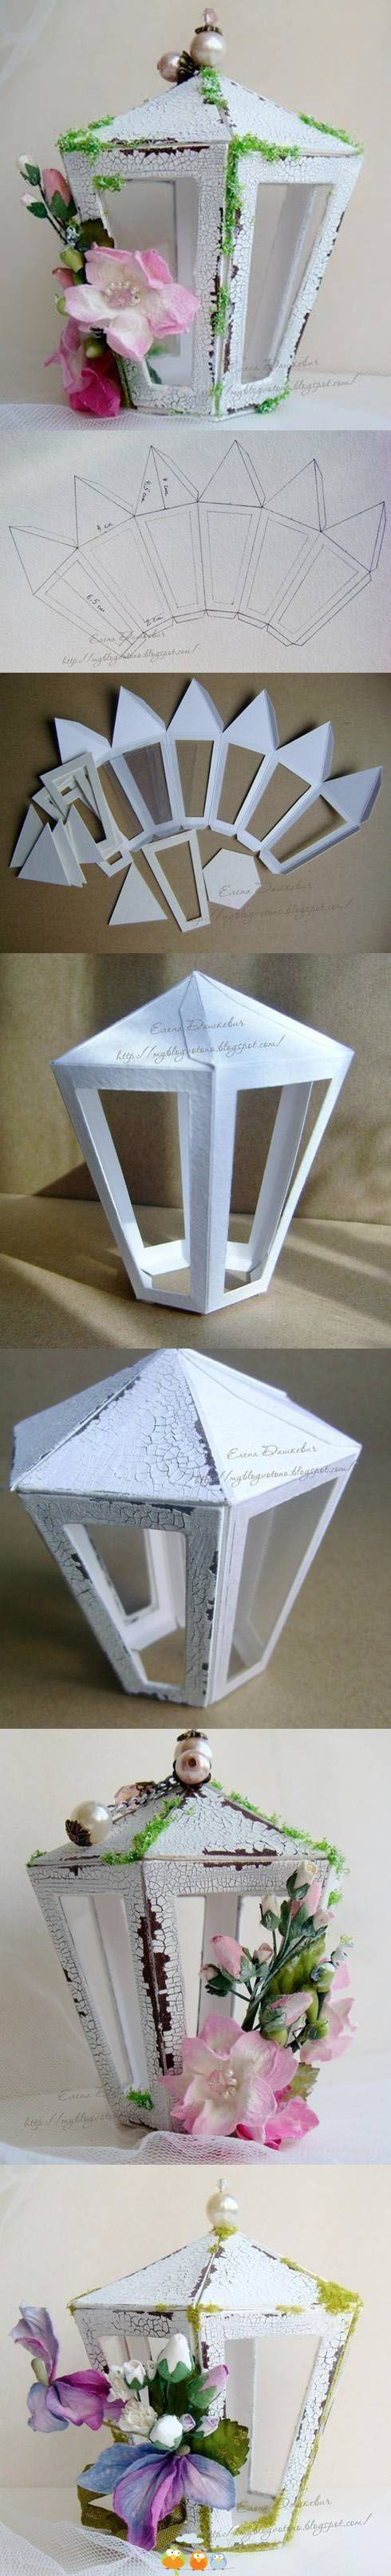 Cardboard lantern how to. Make and out of cardstock or poster paper and hand on your tree at grade school. make 'em black for halloween.